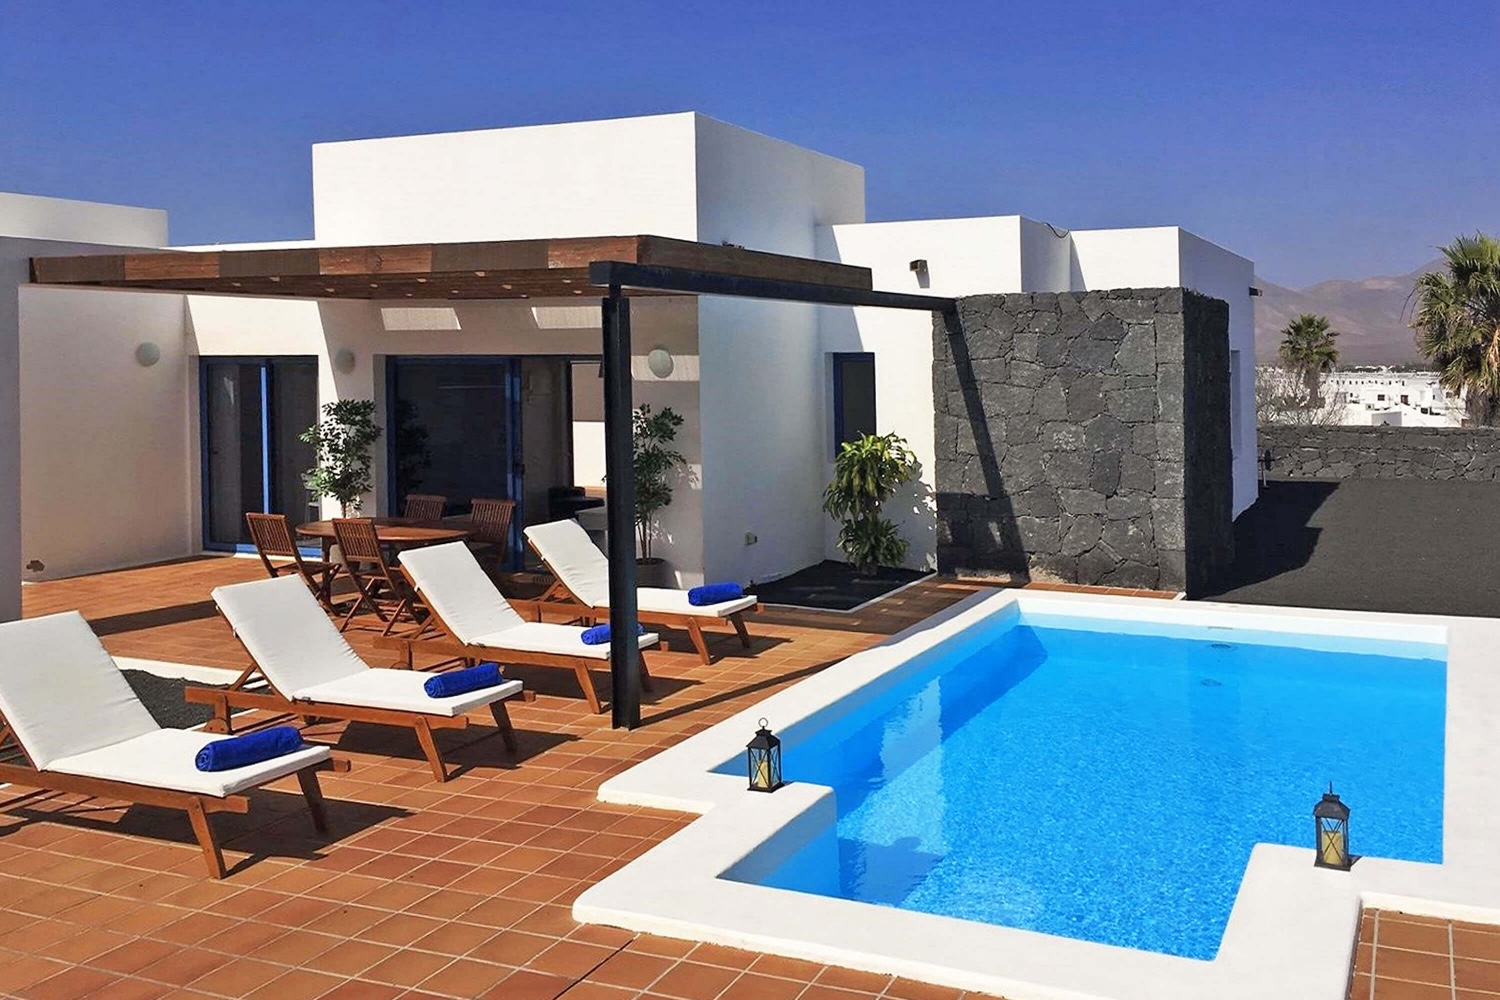 Beautiful villa overlooking Natural Monument with private heatable pool, air conditioning and Wi-Fi, ideal for to rest and relaxed